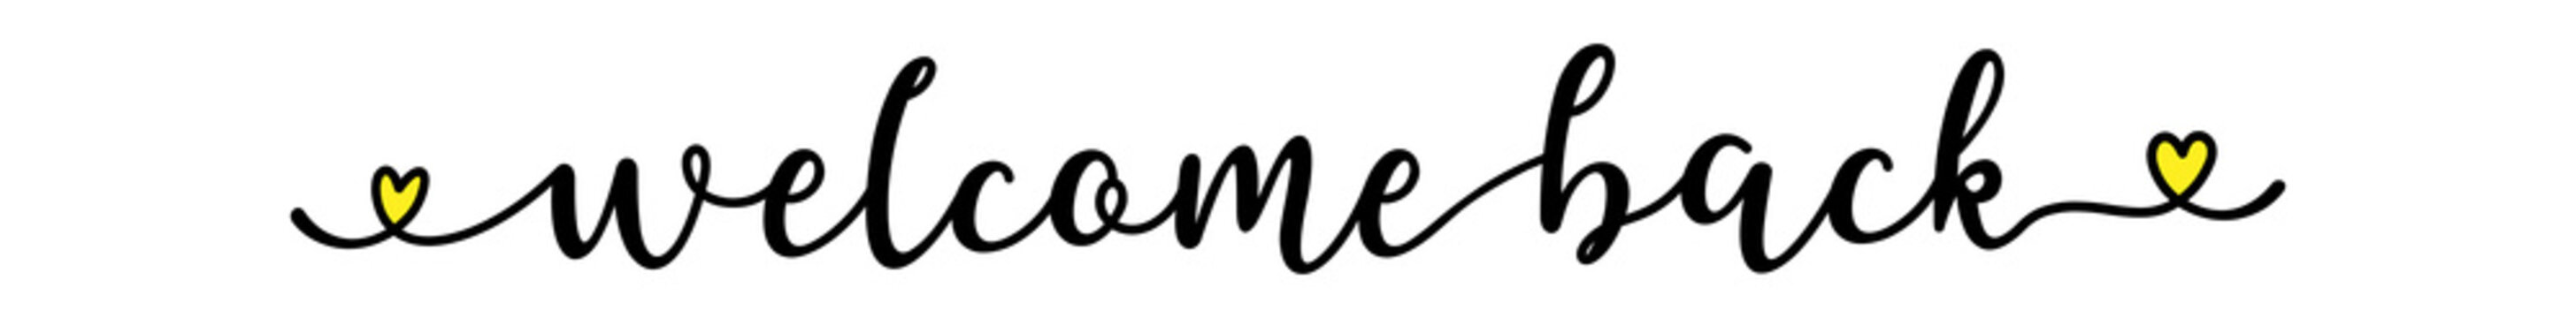 Hand sketched Welcome Back quote as ad, web banner. Lettering for banner, header, advertisement, announcement.